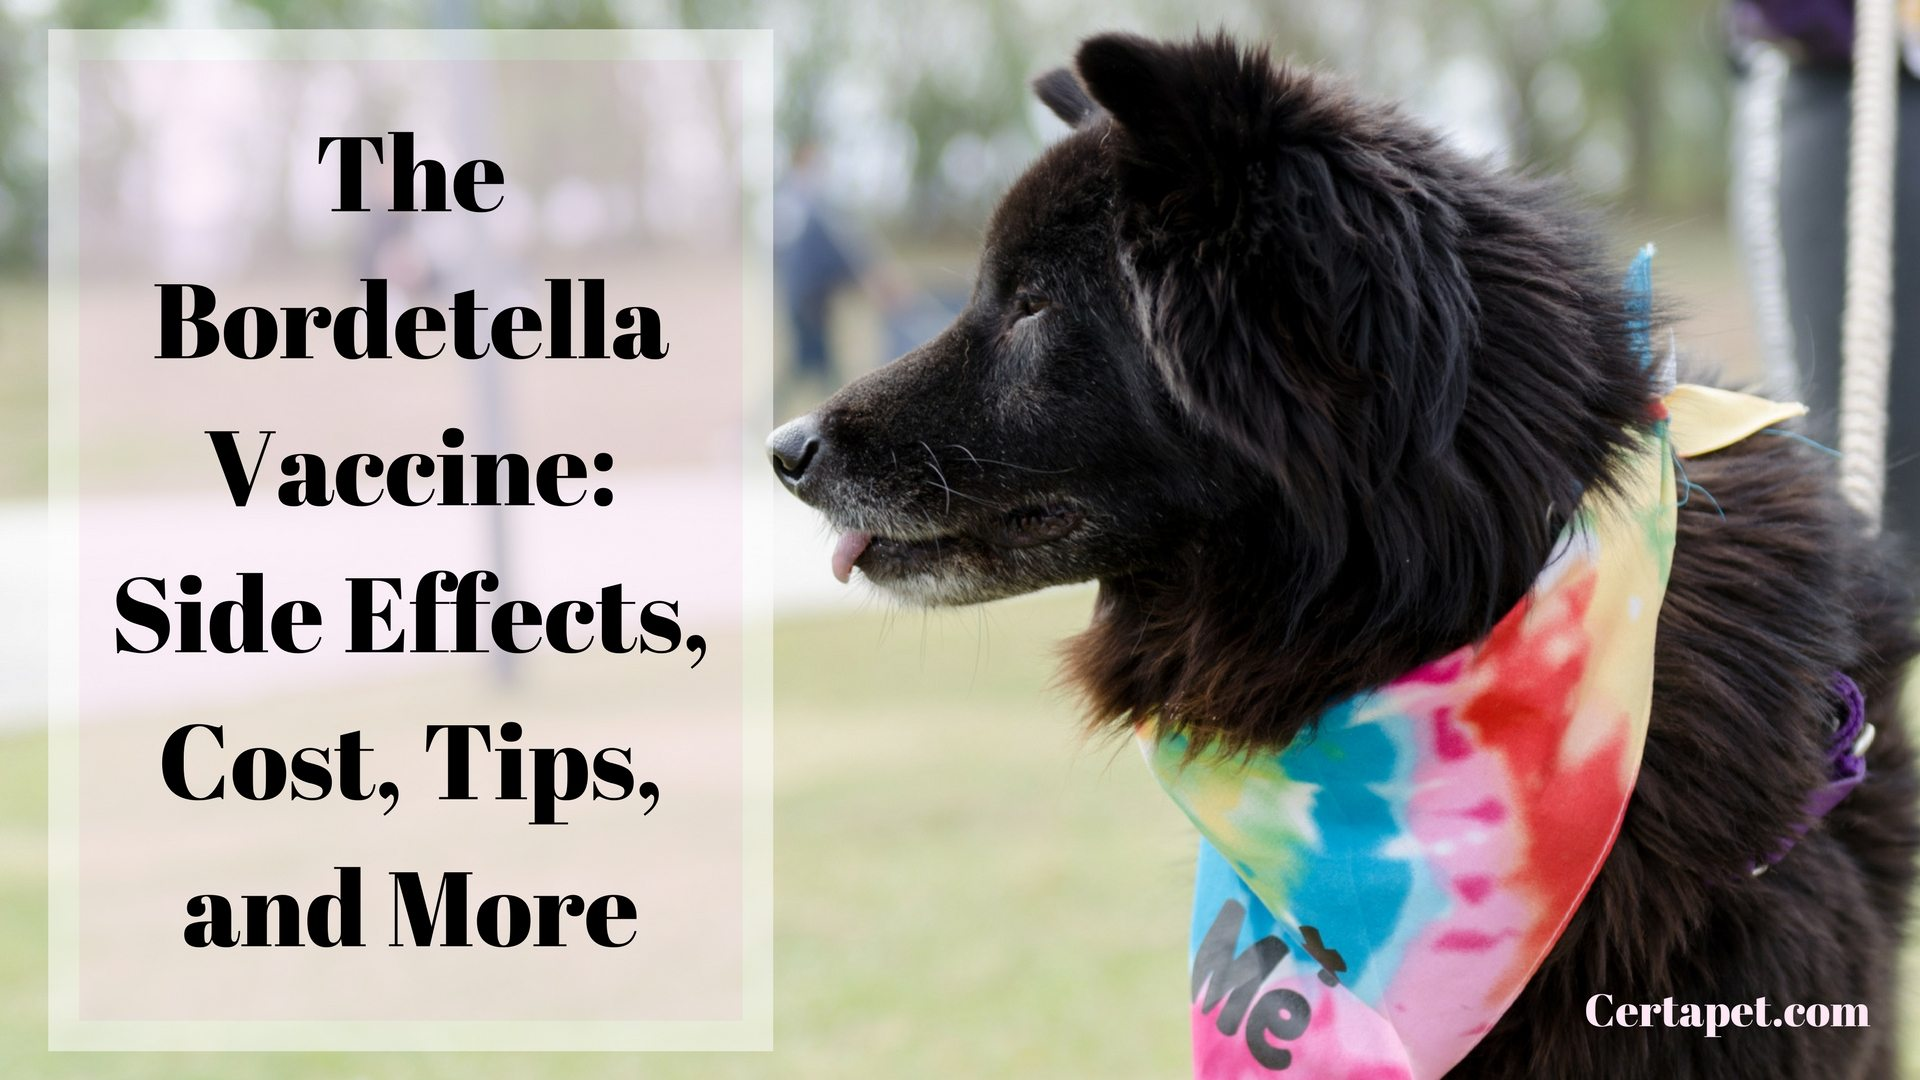 The Bordetella Vaccine Side Effects Cost Tips And More Certapet